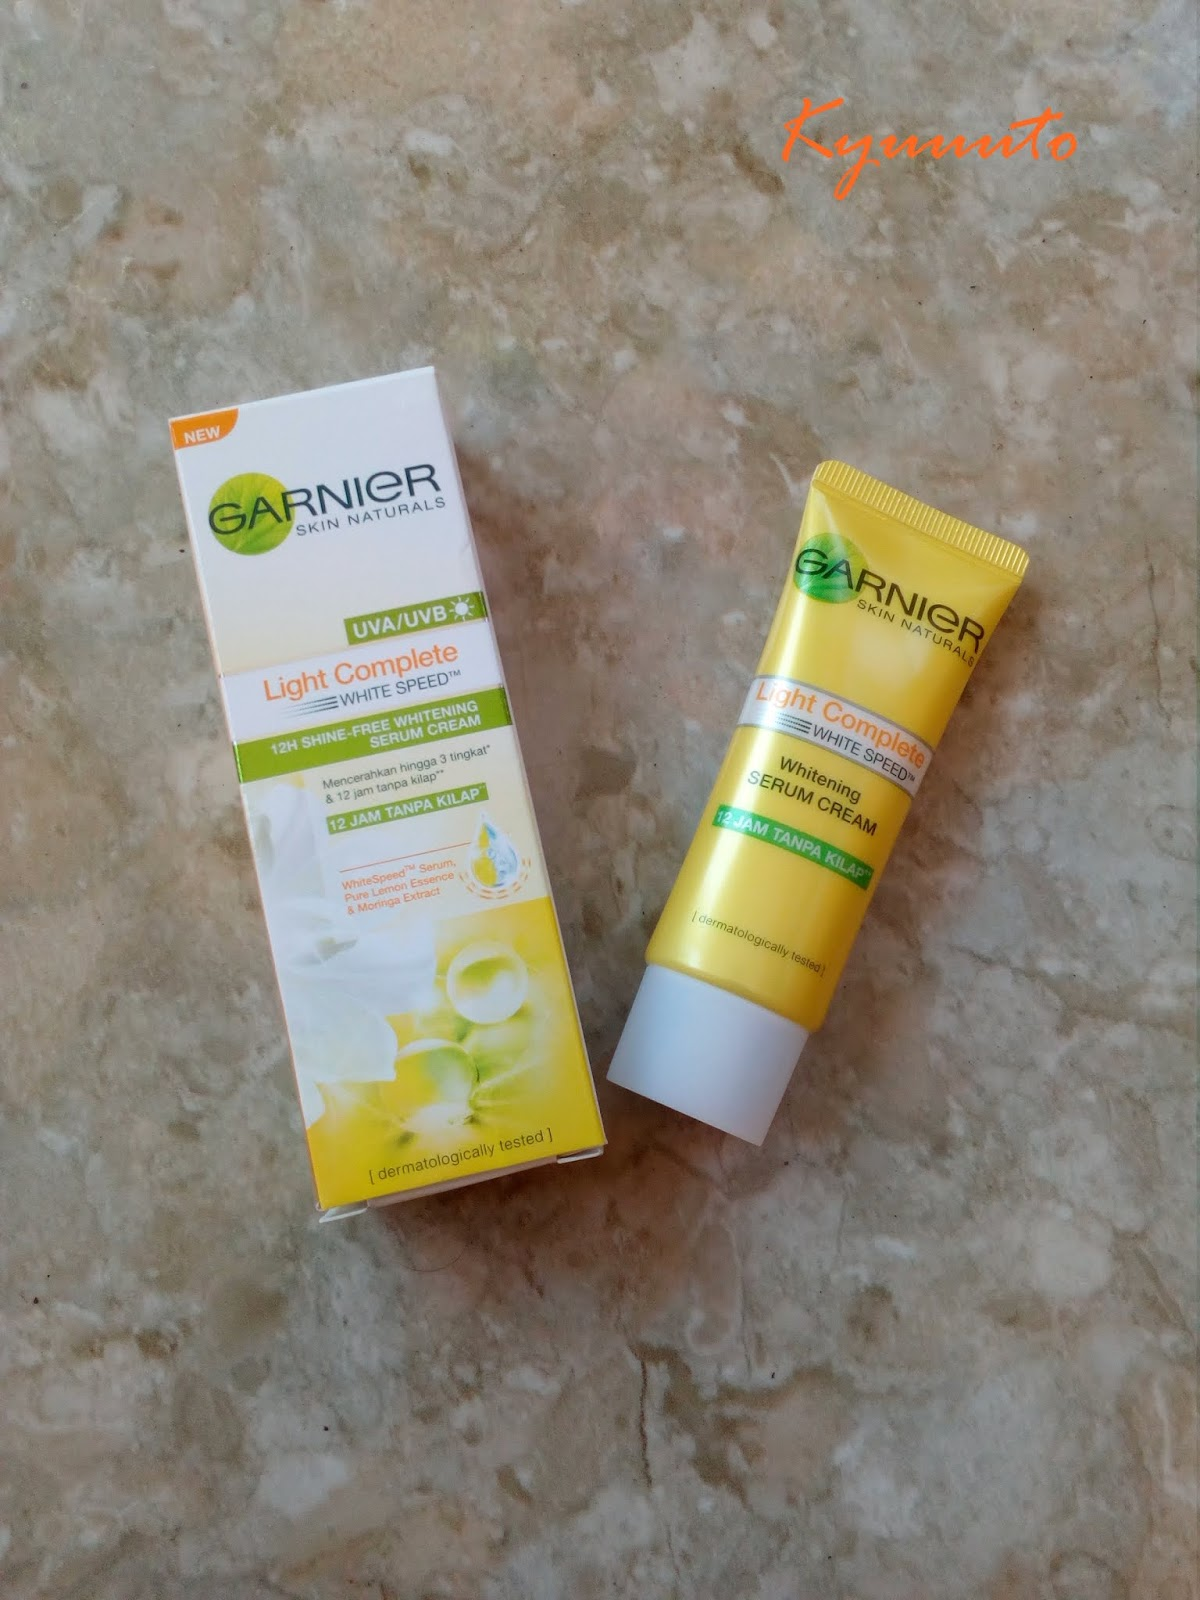 Review Jujur Garnier Light Complete White Speed Whitening Serum Paket Ini Adalah Penampilan Dari Cream 12h Shine Free